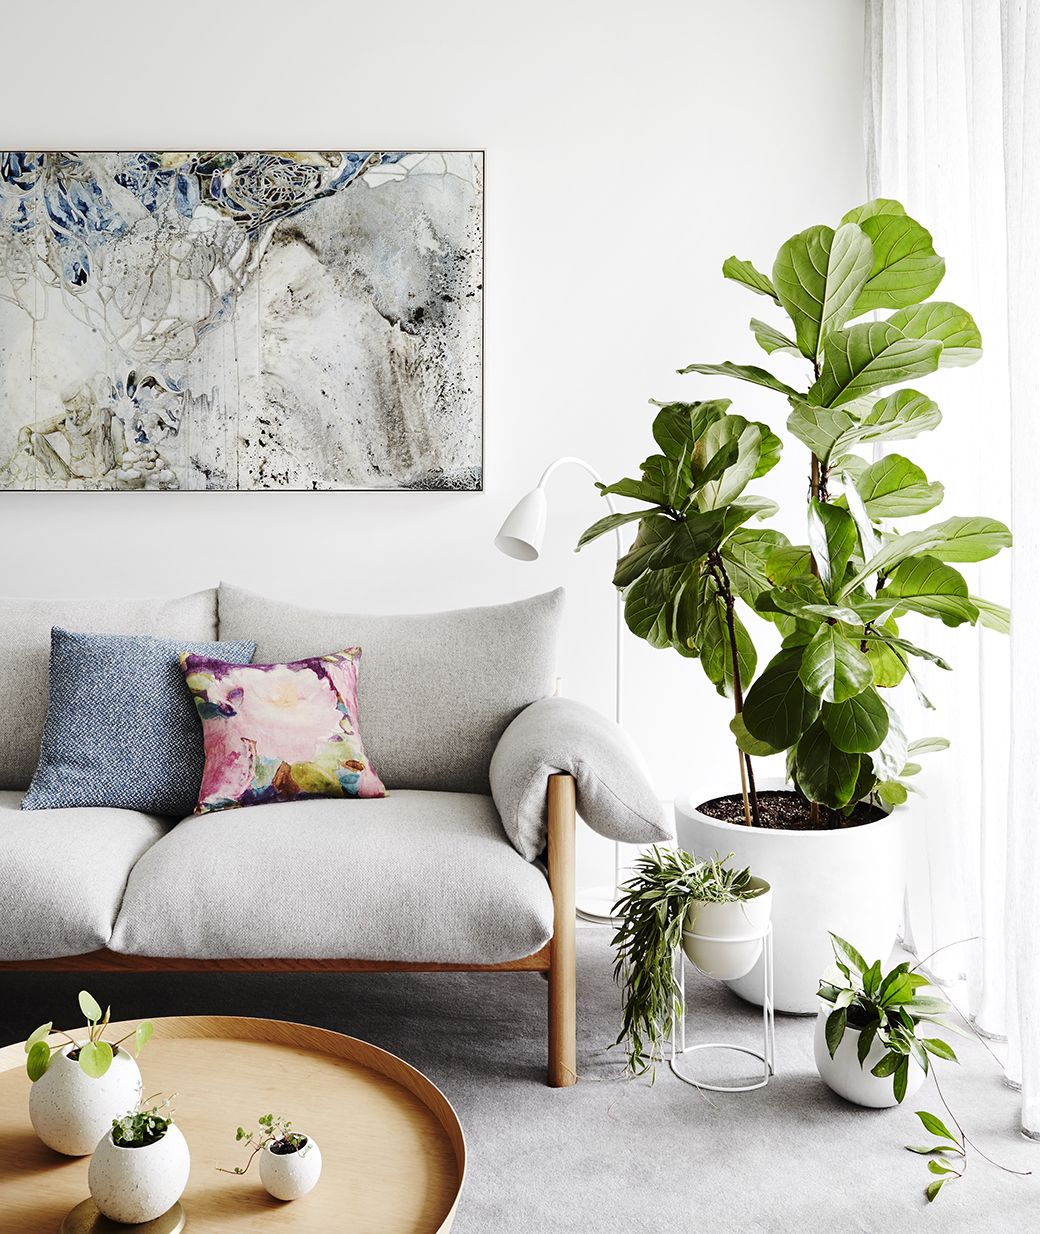 8 stylish ways to decorate live with plants page 39 of plant style